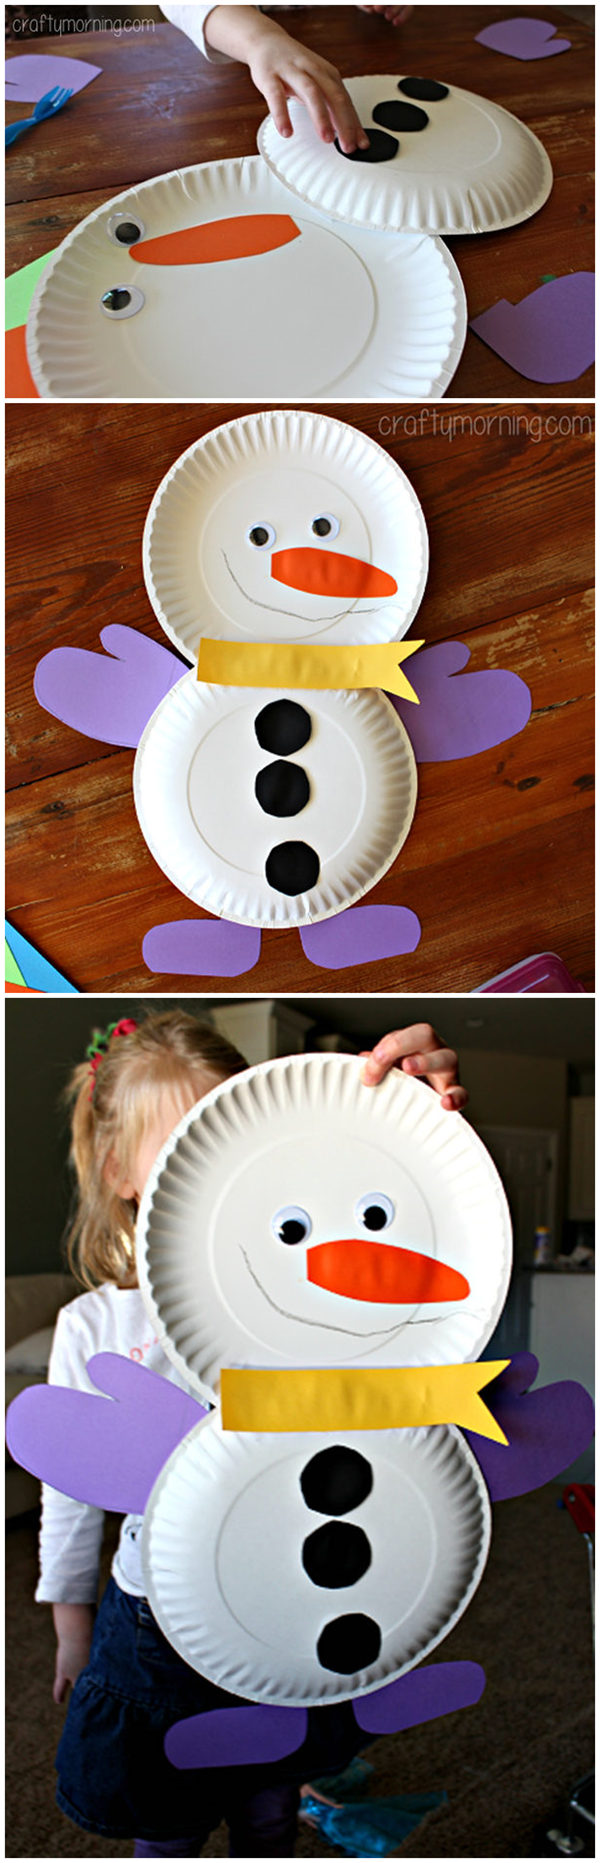 Cute paper plate snowman craft for kids flowcoast cute paper plate snowman craft for kids jeuxipadfo Gallery